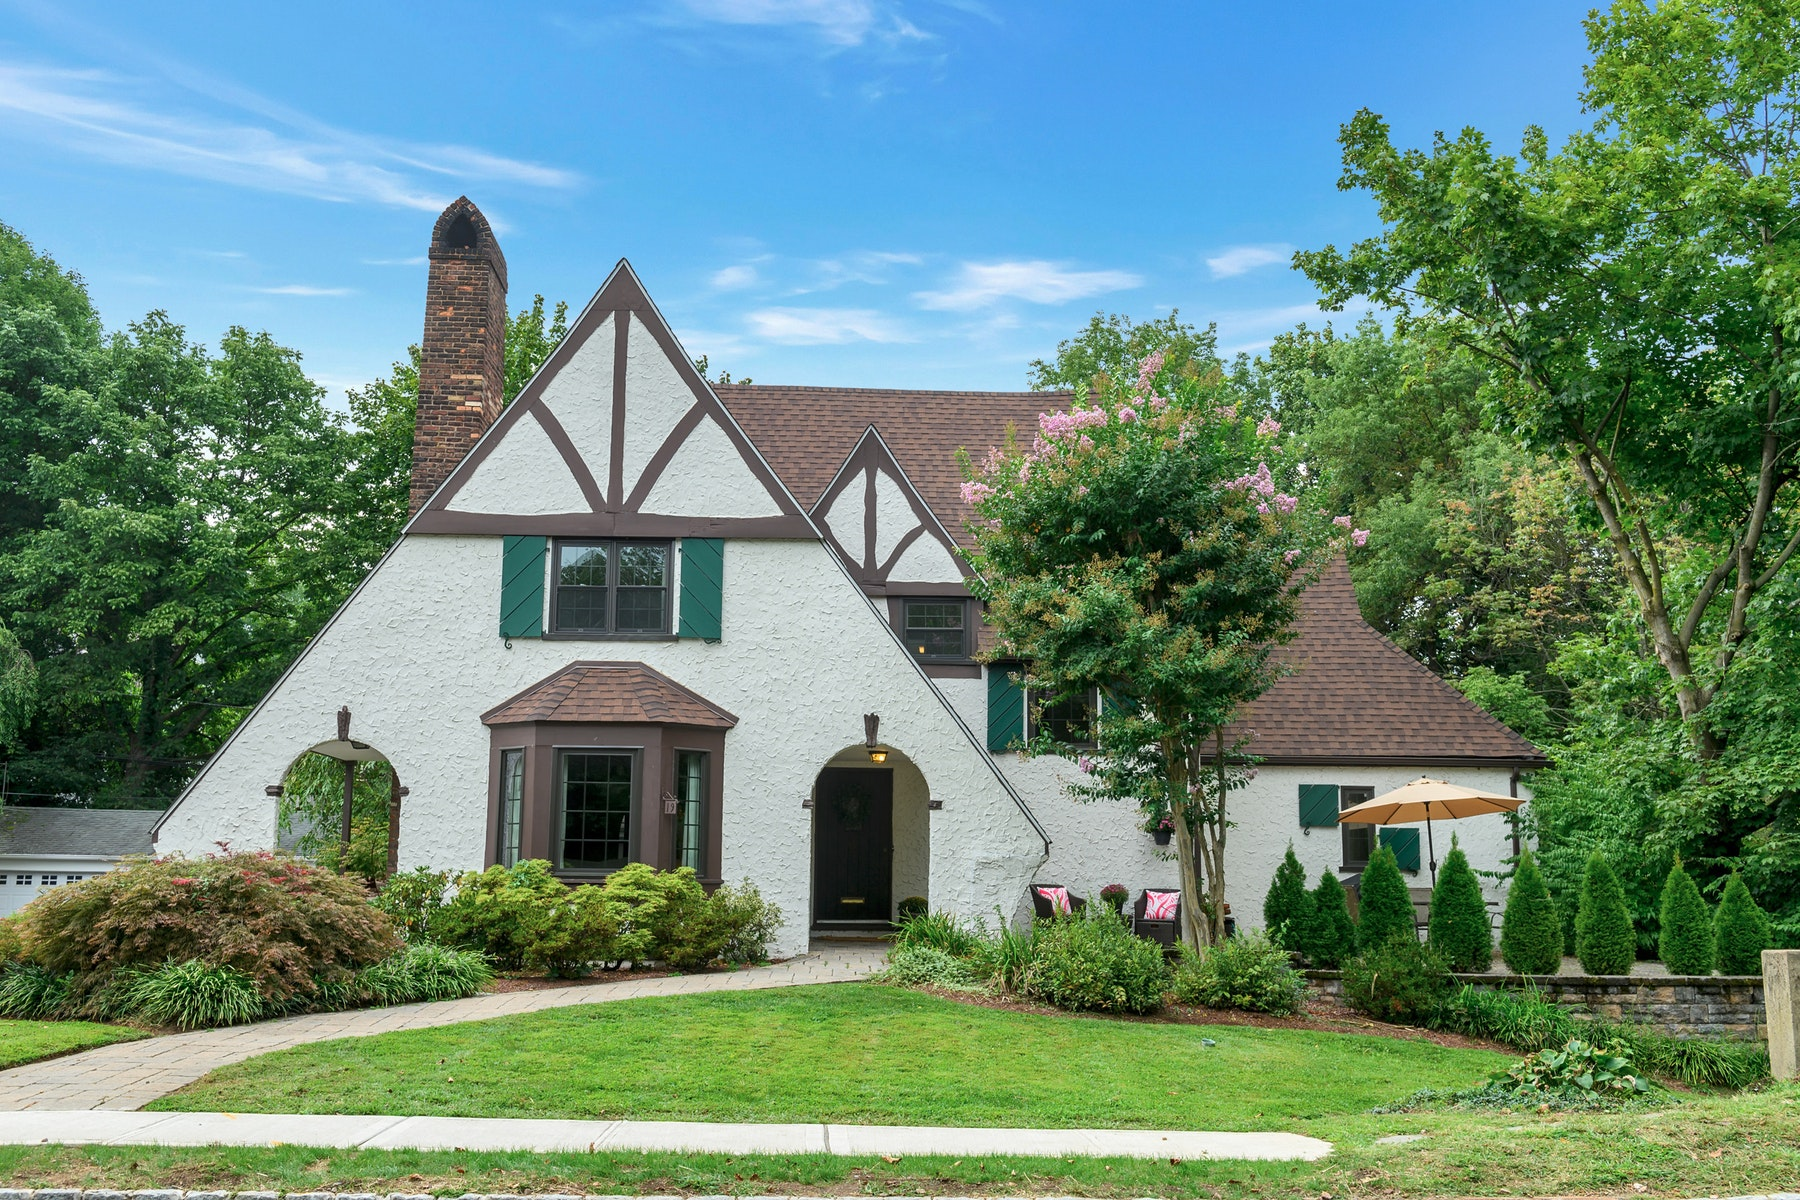 Single Family Homes for Sale at Light-Filled, Storybook Tudor 19 Woodmont Road Montclair, New Jersey 07043 United States